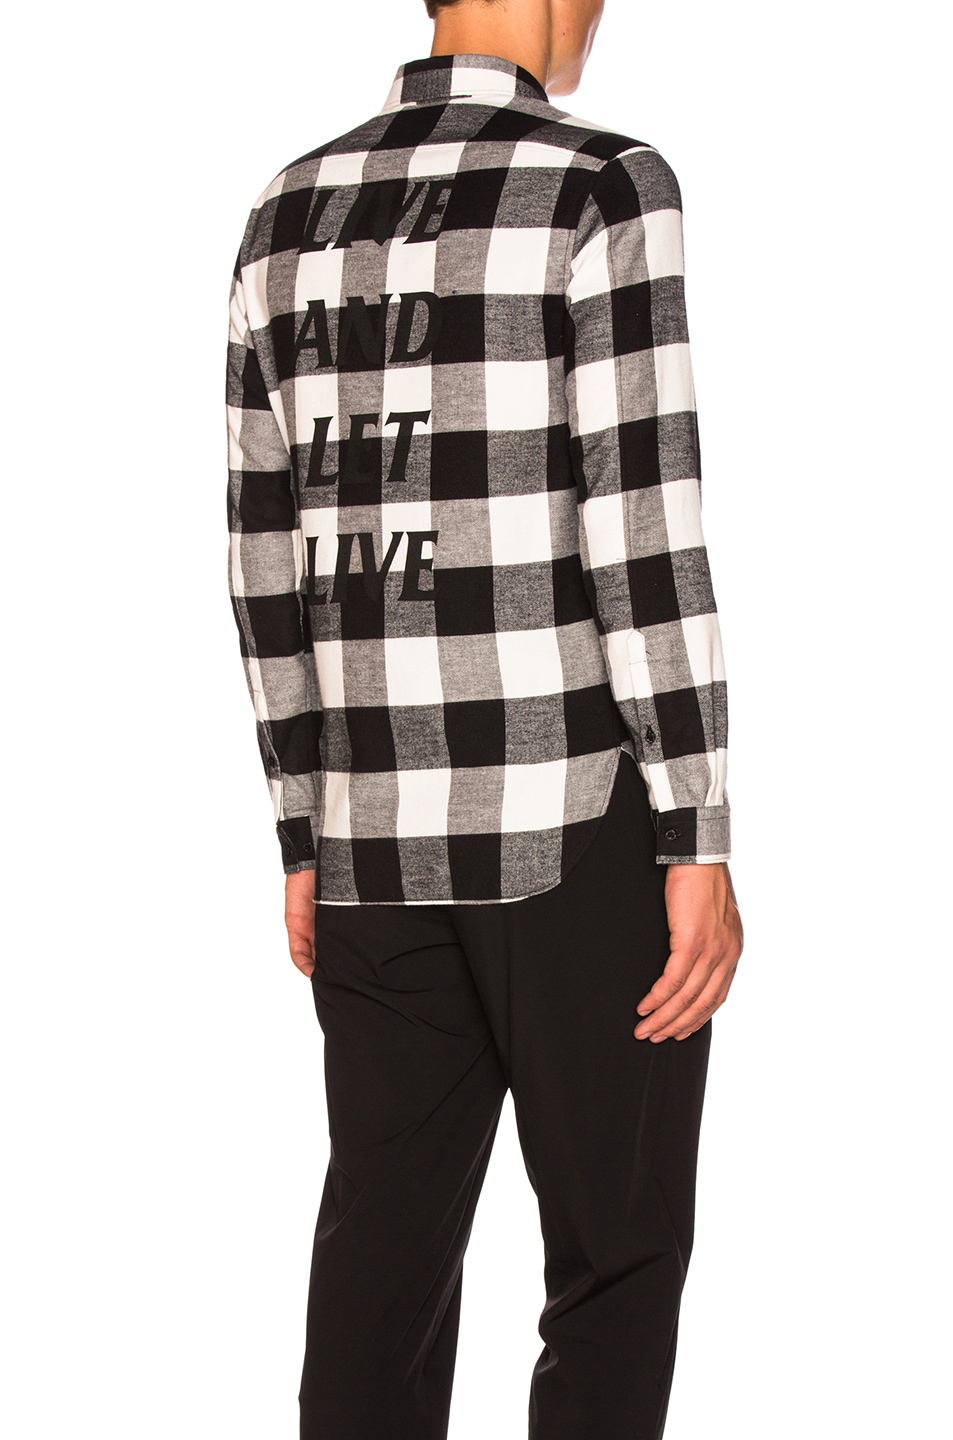 Neil Barrett Live & Let Live Printed Flannel in Black,White,Checkered & Plaid